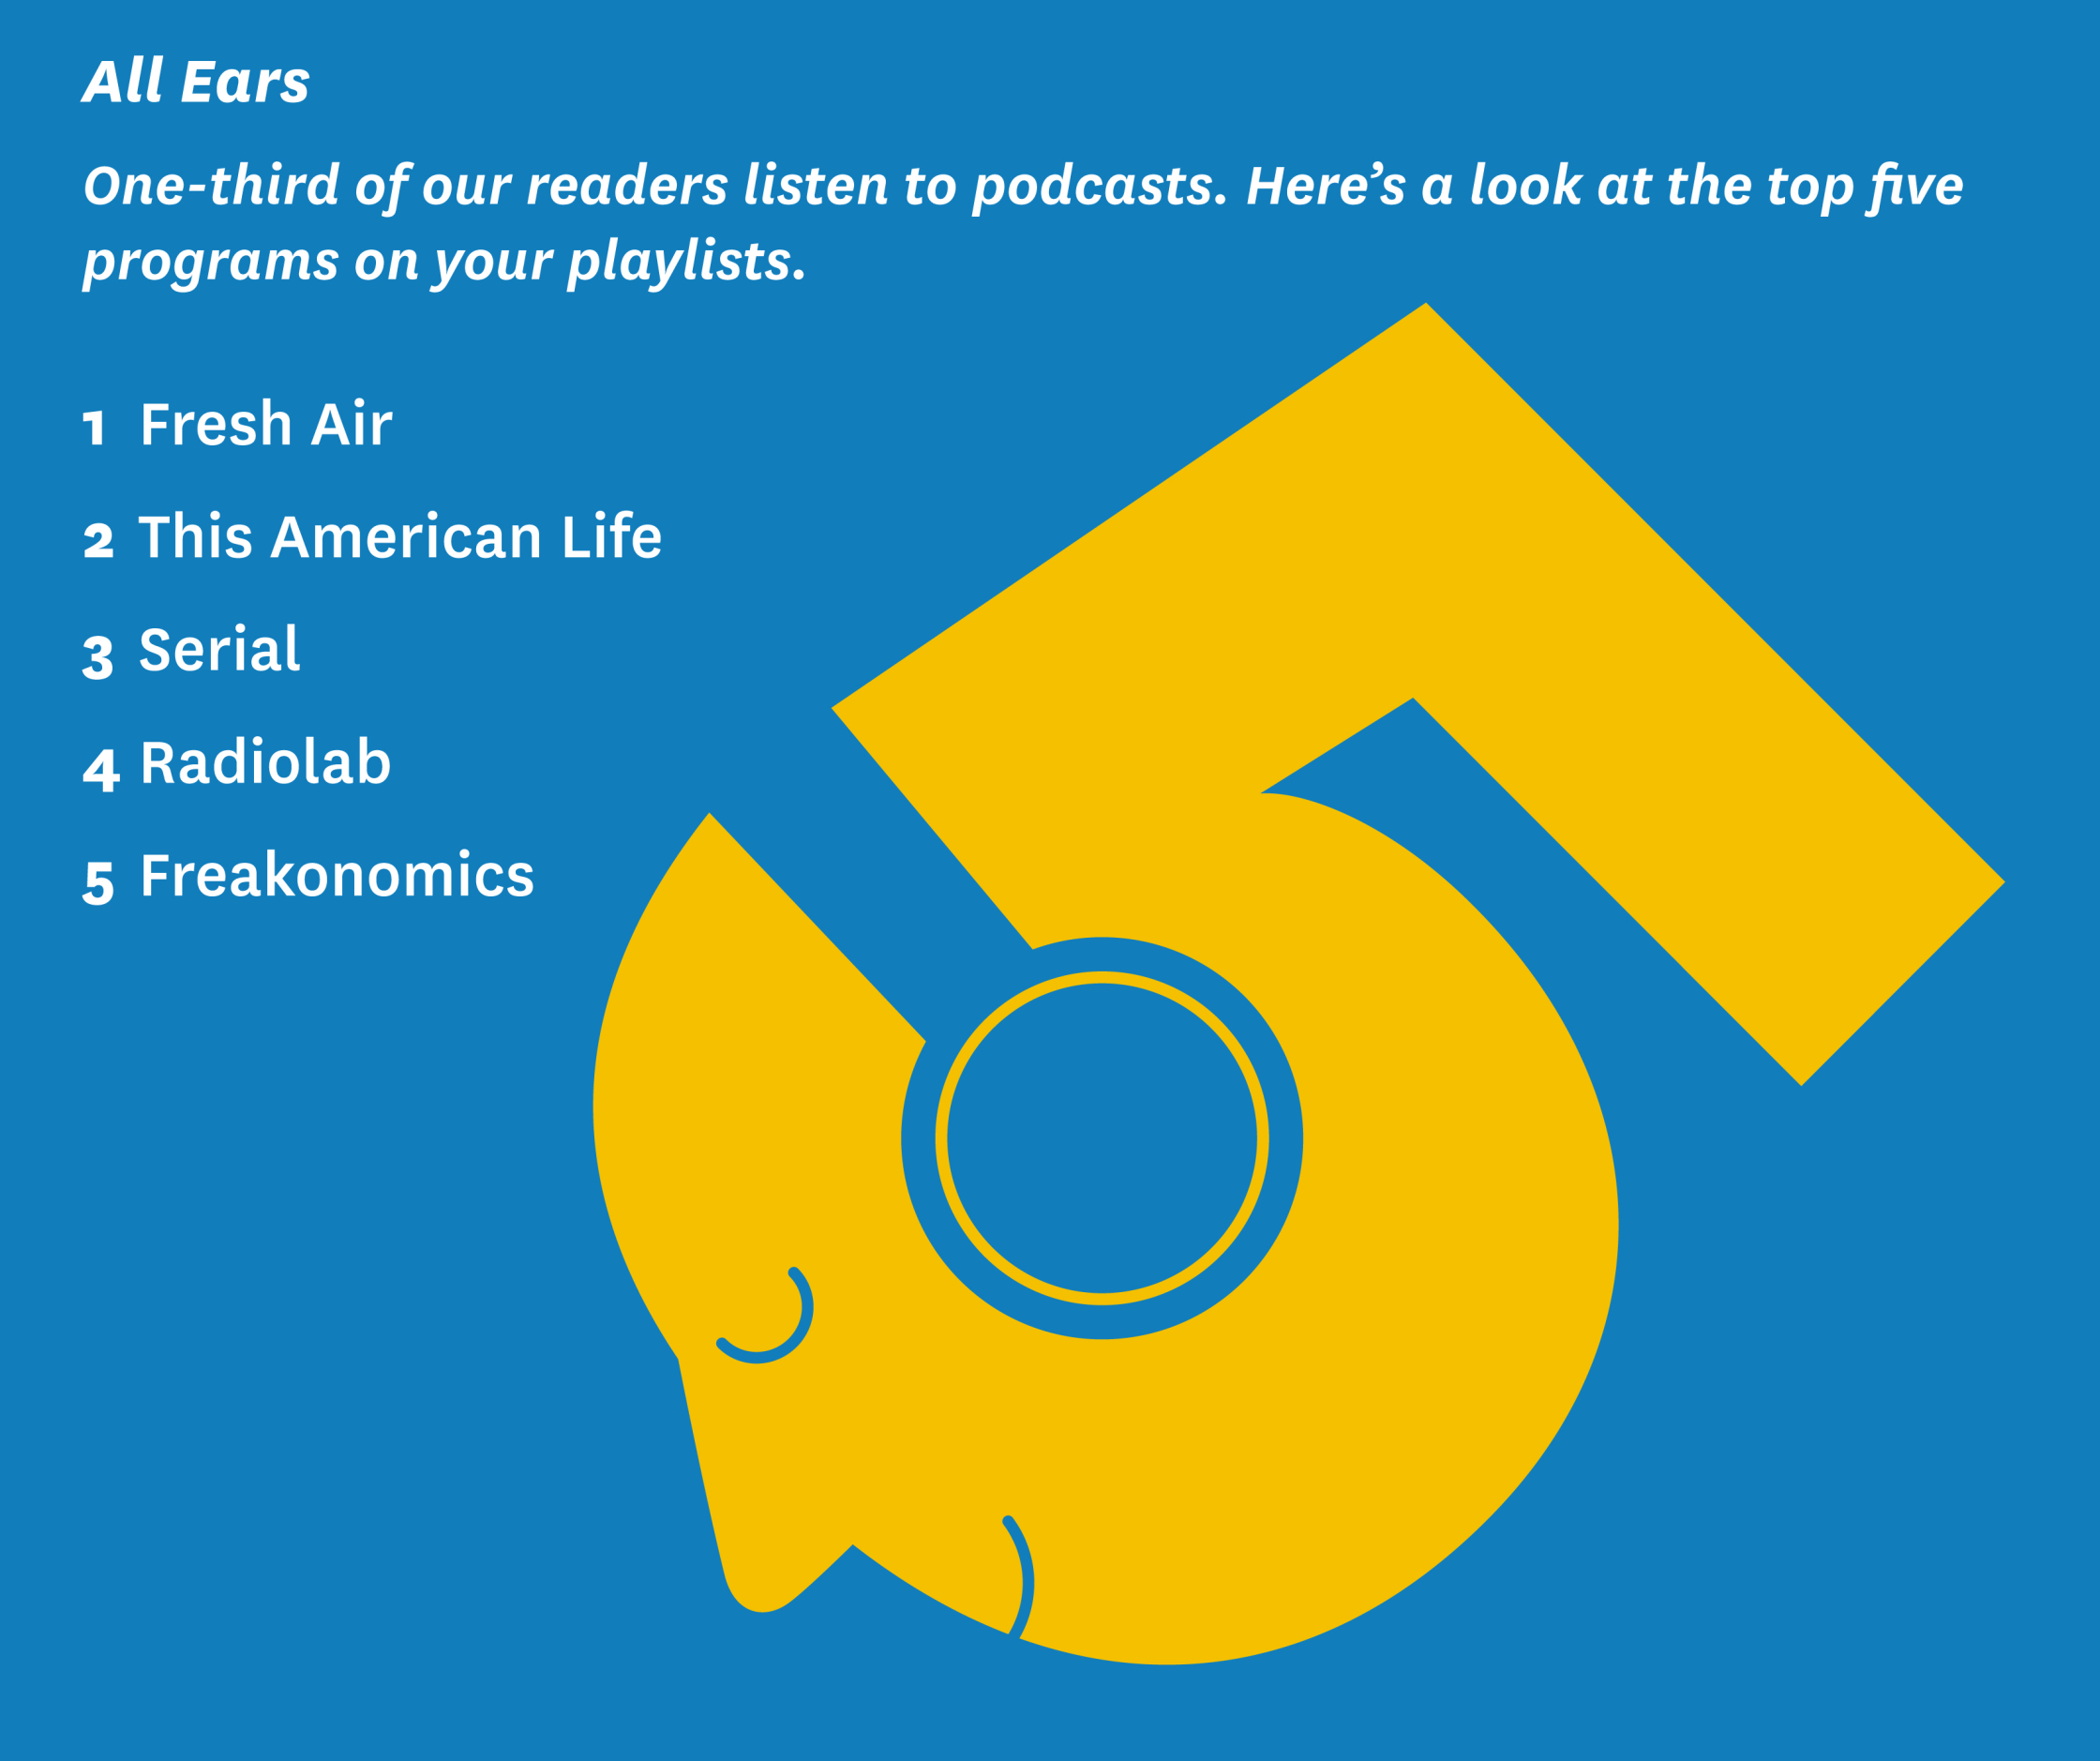 top-five-podcasts-johns-hopkins.jpg